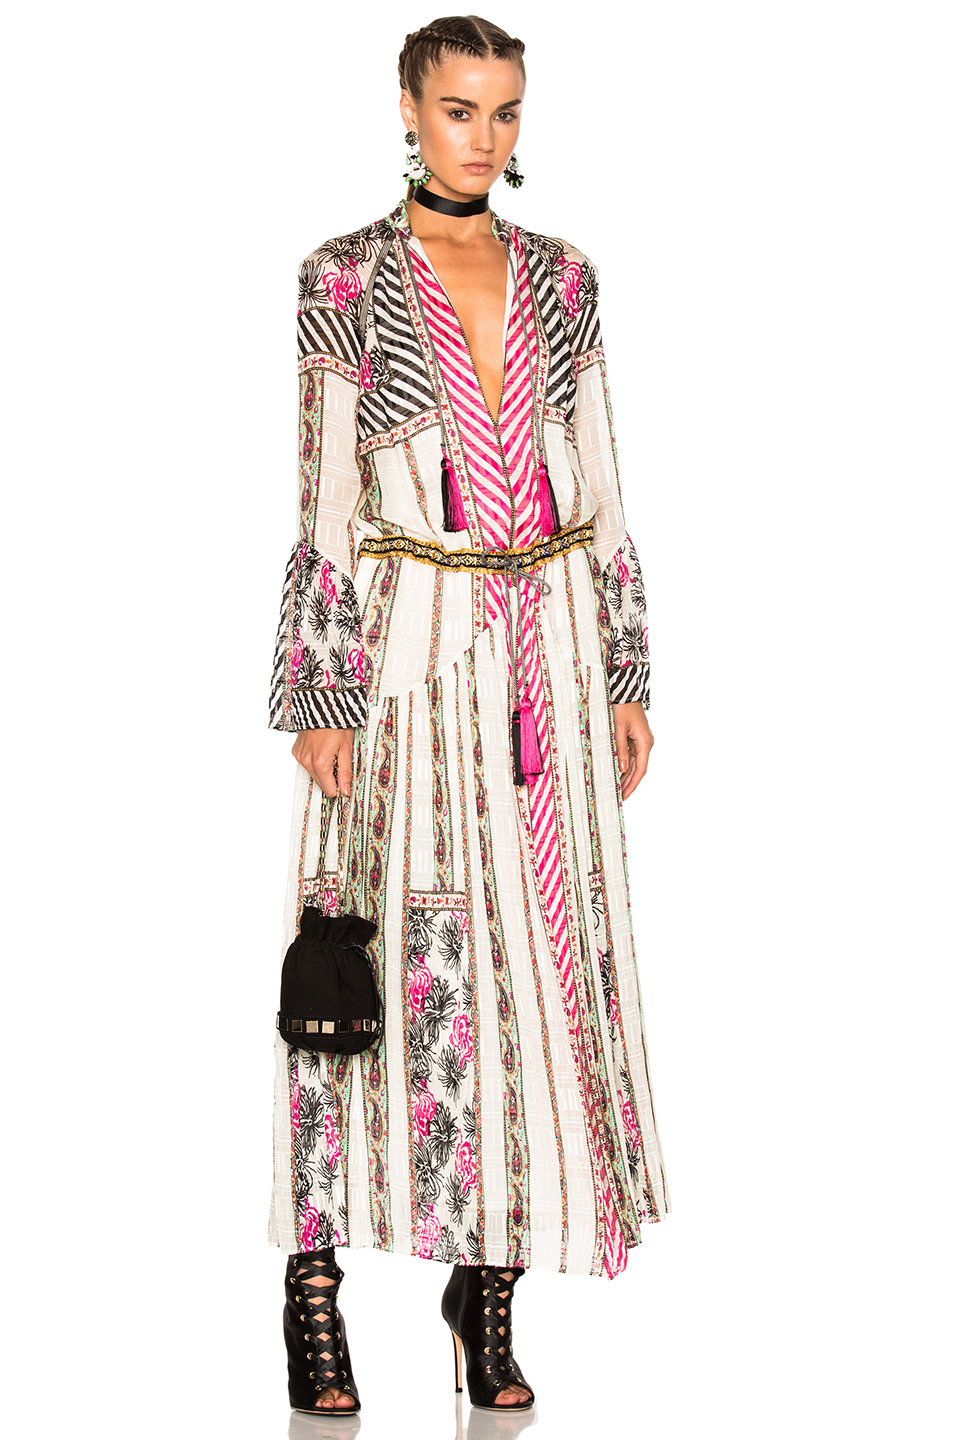 Etro Saffron Dress in Abstract,Black,Pink,White